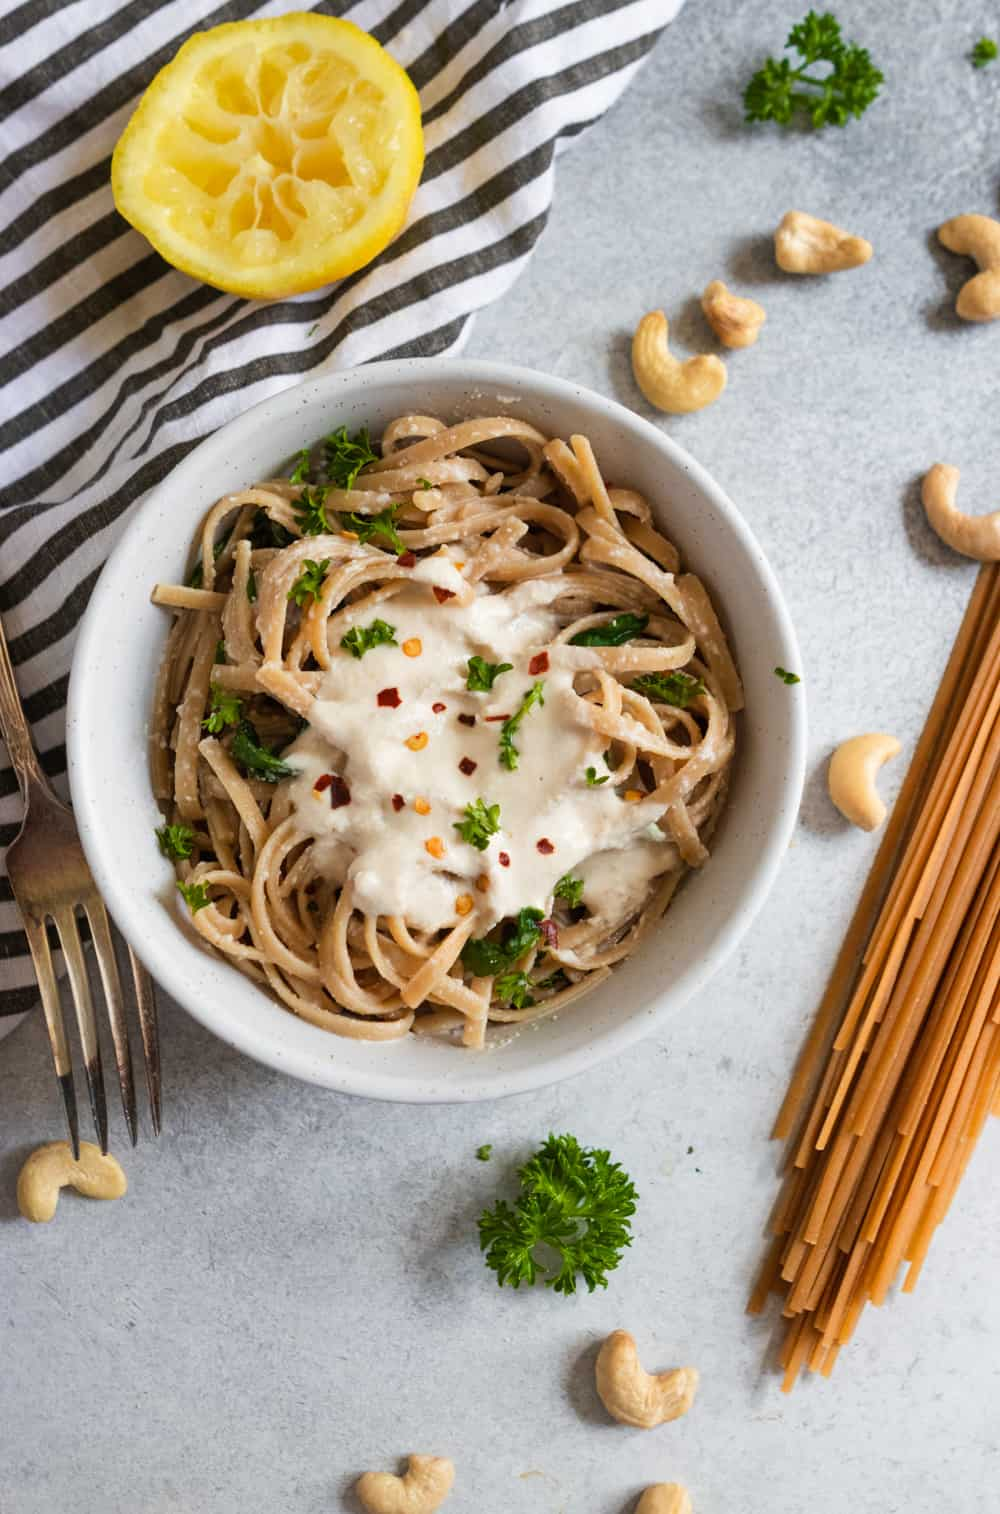 Lemon Garlic Cashew Cream Sauce over Pasta.